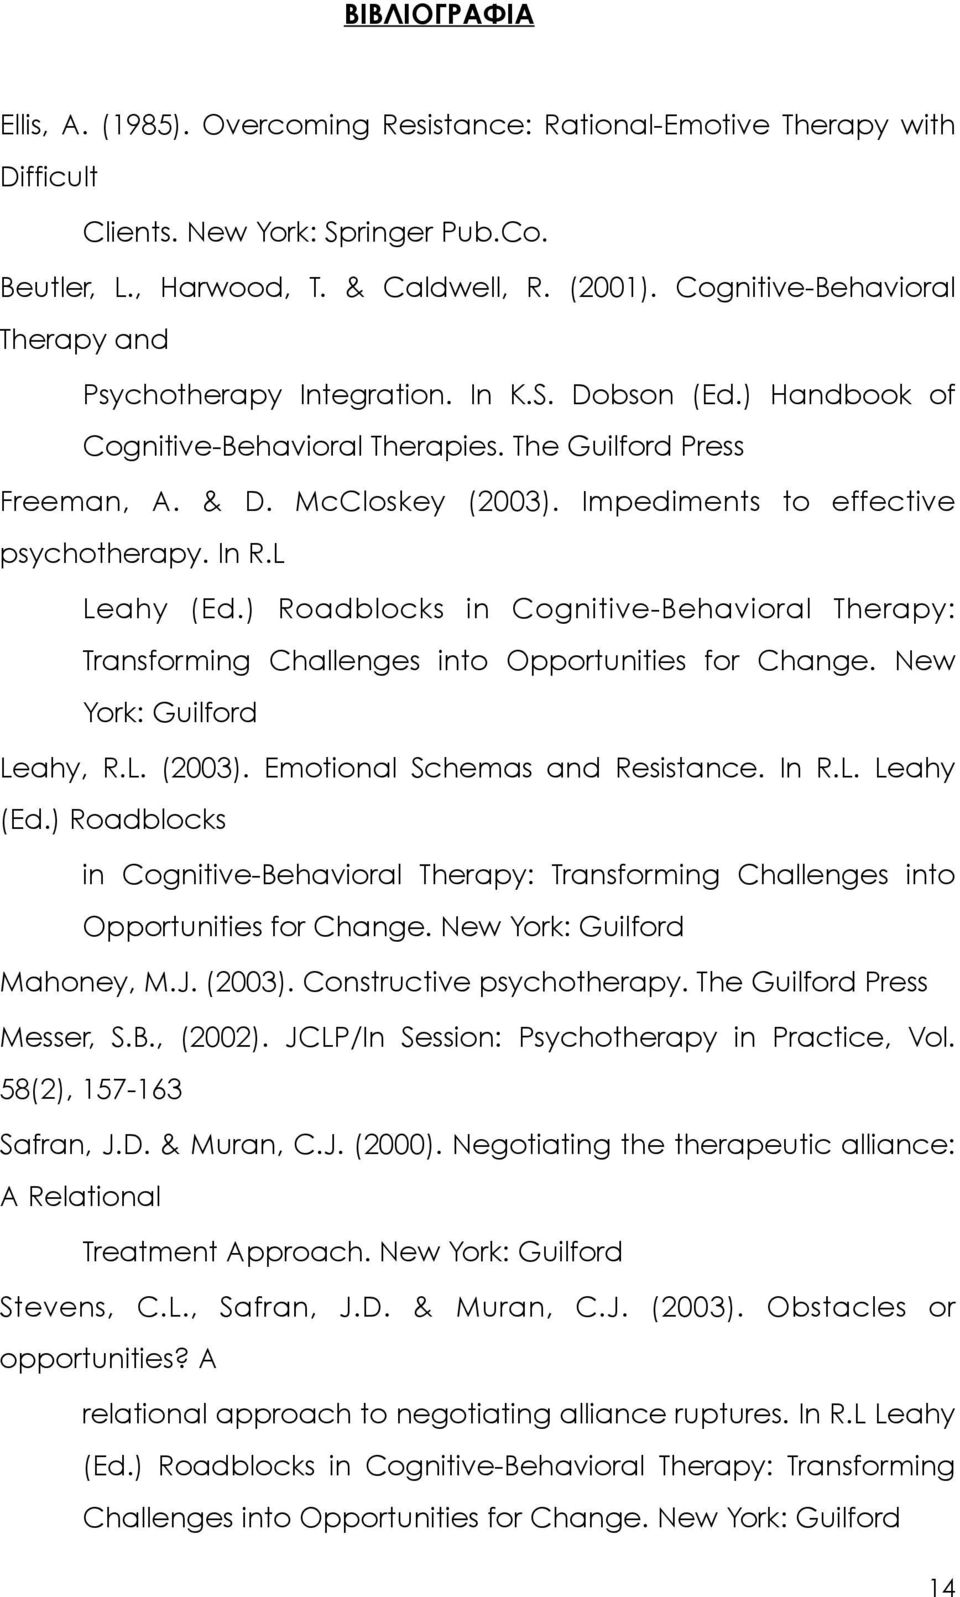 Impediments t effective psychtherapy. In R.L Leahy (Ed.) Radblcks in Cgnitive-Behaviral Therapy: Transfrming Challenges int Opprtunities fr Change. New Yrk: Guilfrd Leahy, R.L. (2003).